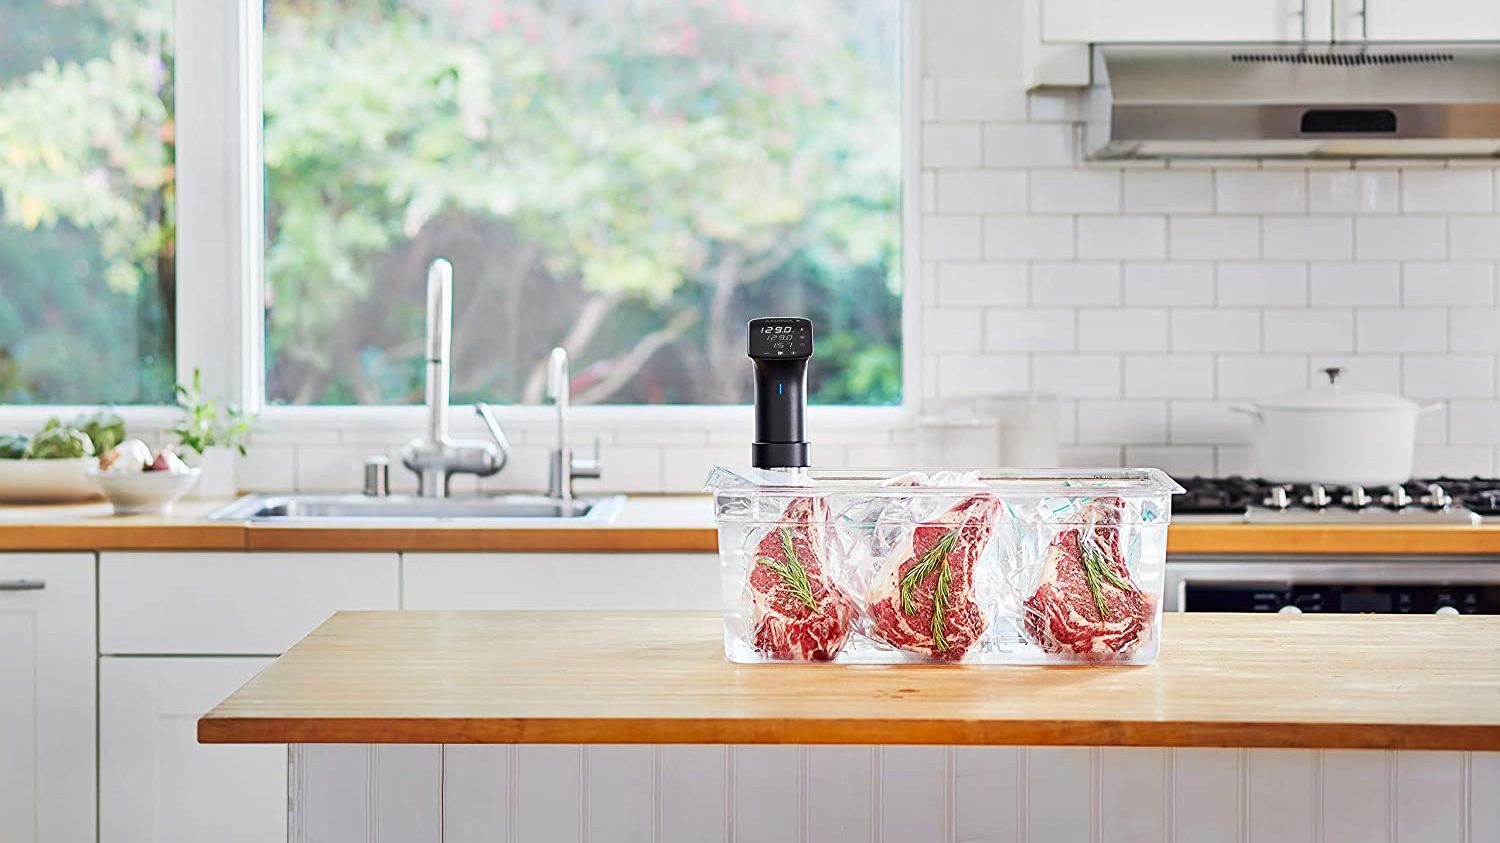 Amazon's Prime Day deals on Anova sous vide cookers are game-changers for your kitchen